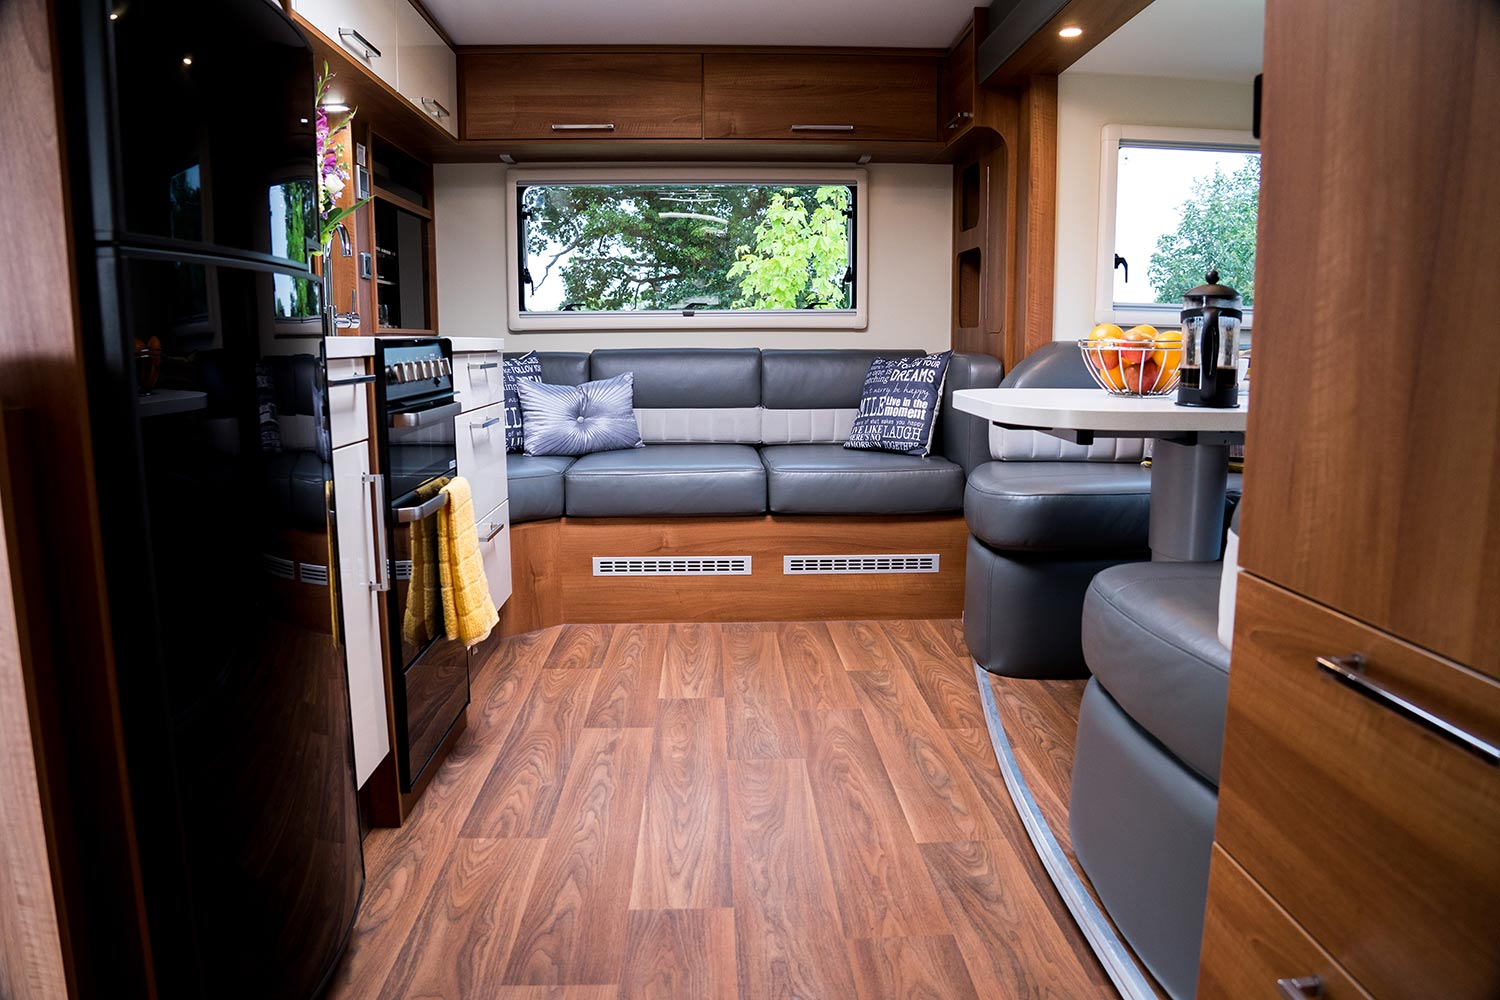 Fifth Wheel Co Dreamseeker interior rear